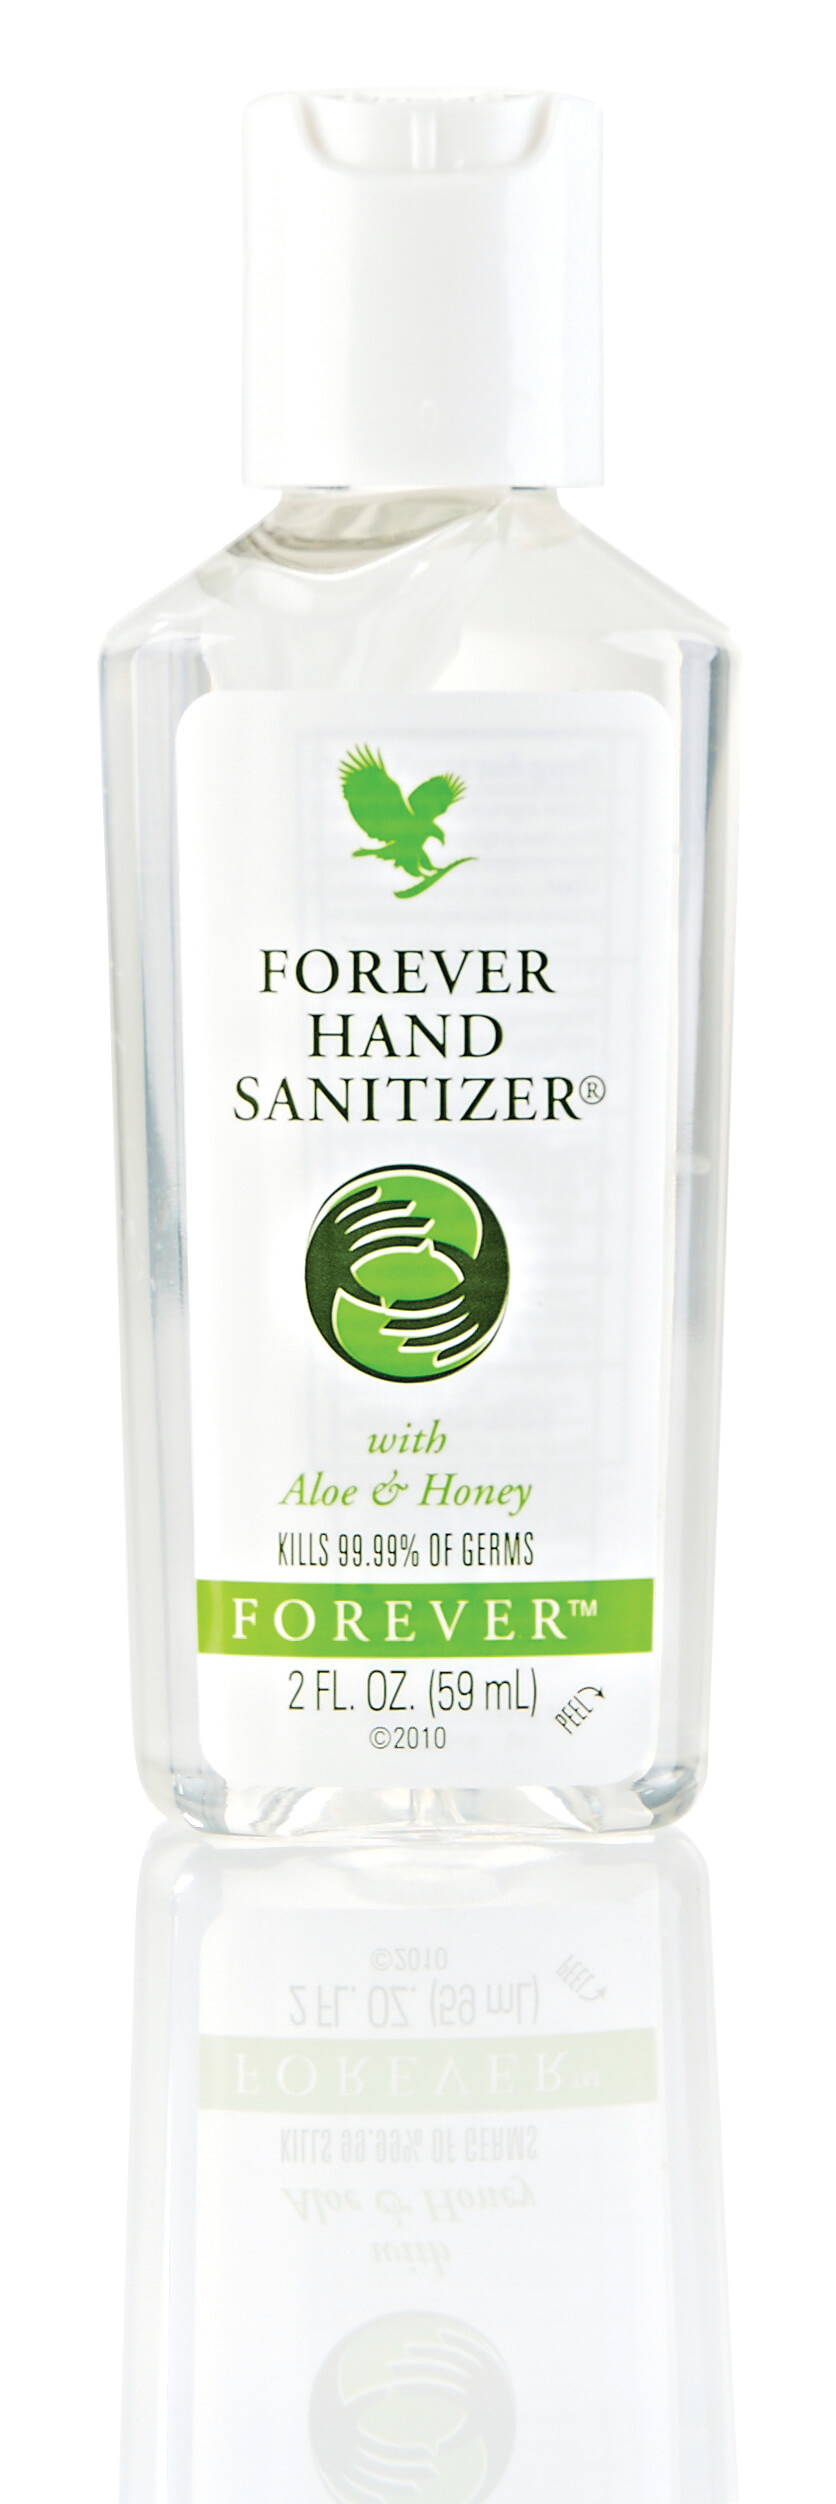 Forever Hand Sanitizer Some Peace Of Mind In A Handy Bottle